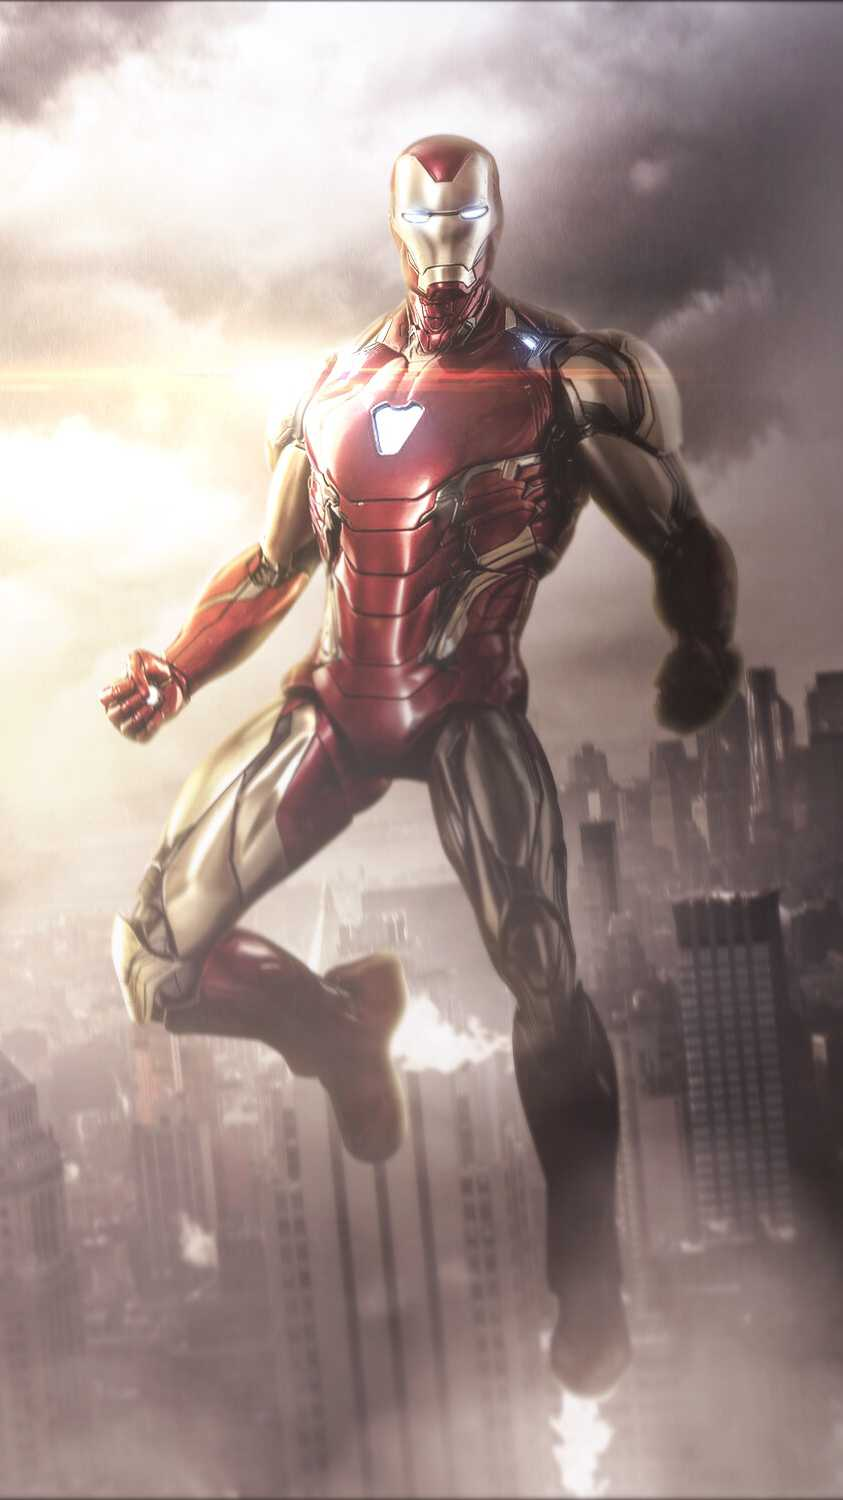 Artistic Quotes Wallpaper Iron Man Avengers Endgame Armor Iphone Wallpaper Iphone